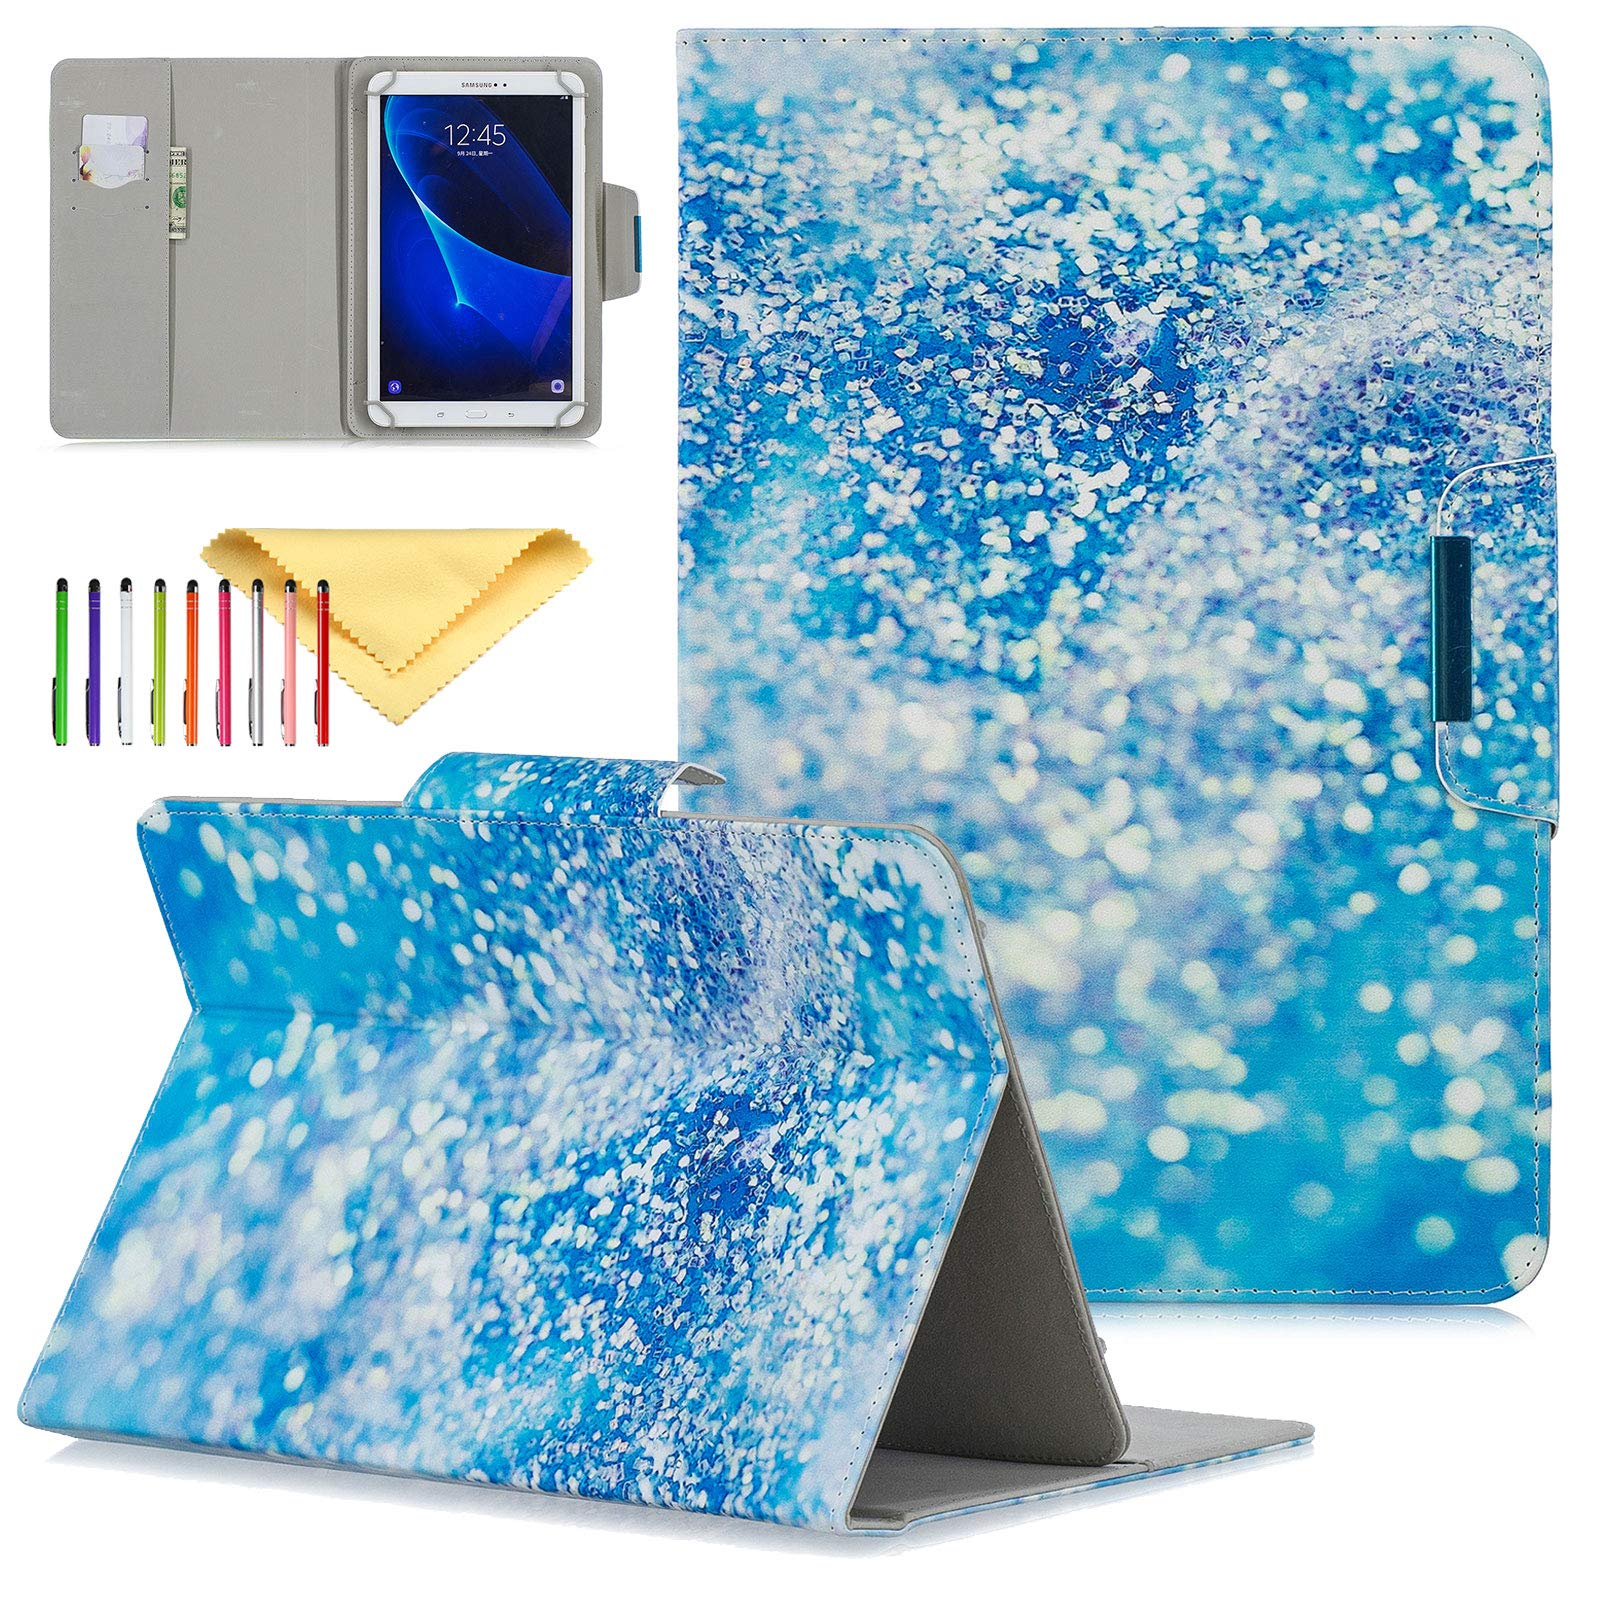 Universal Case for 9.5-10.5 inch Tablet, Uliking Wallet Case for F ire HD 10 2017 2015, for Samsung Galaxy Tab 4 9.7 Tab E 9.6 A 9.7,Tab S, for Google Nexus 9, for iPad Air 2 1, Blue Glitter